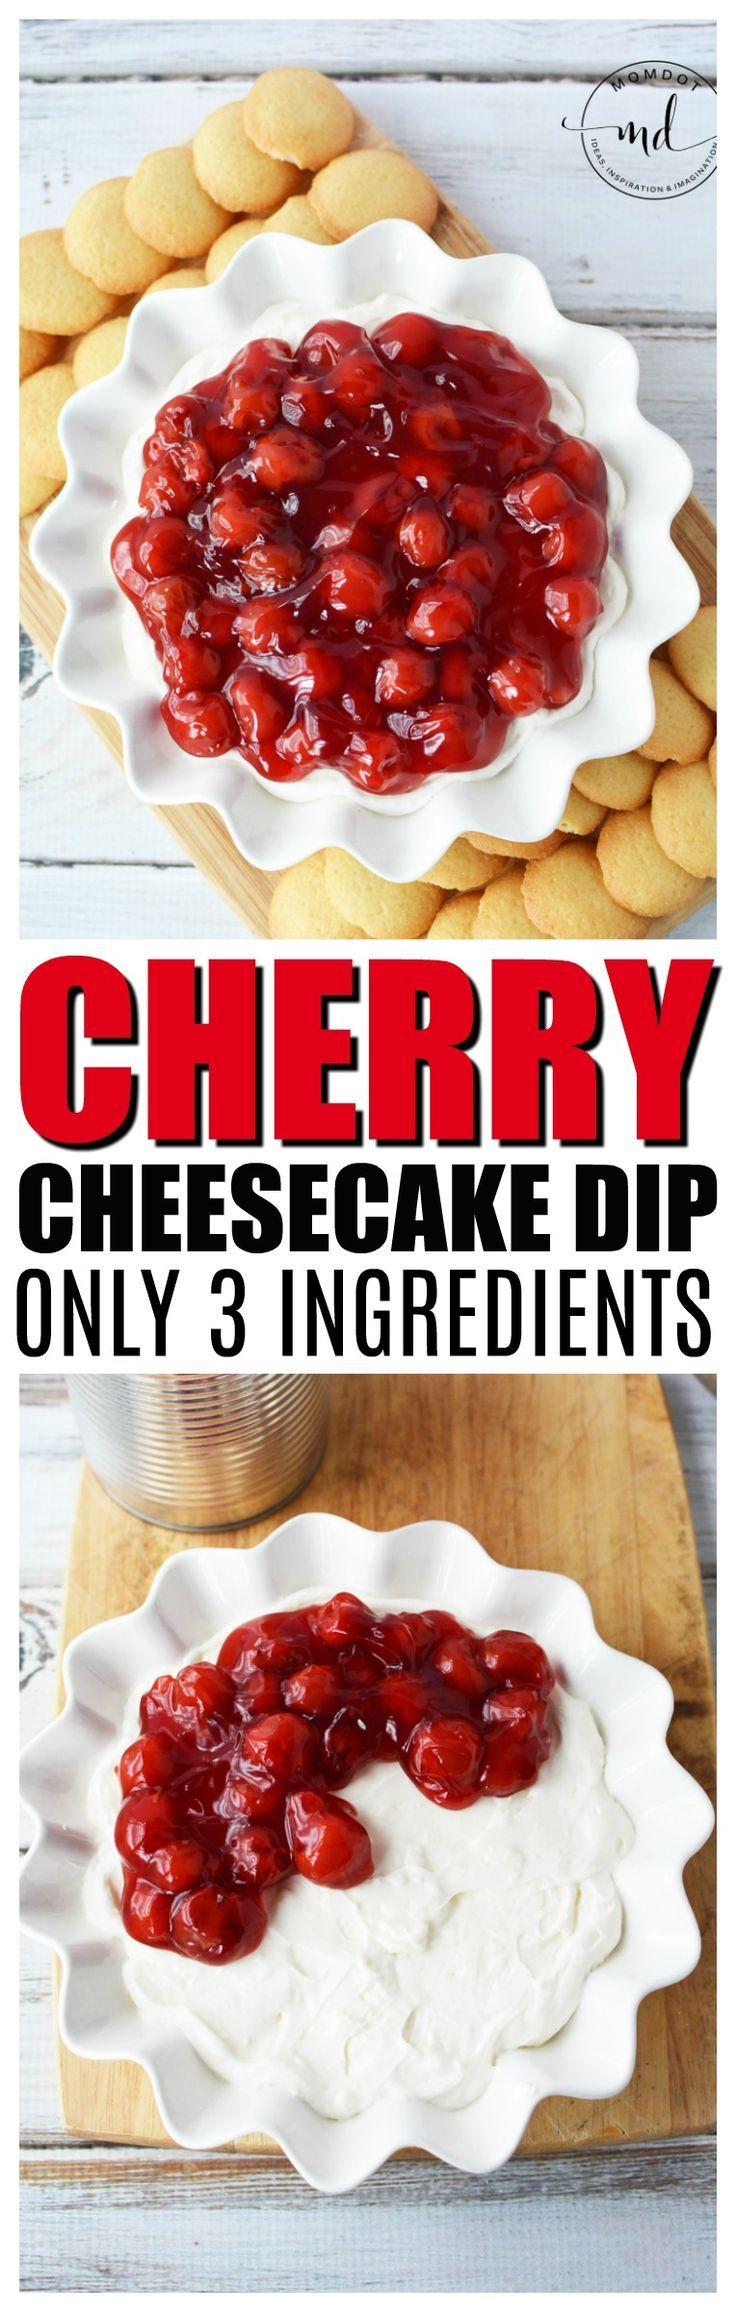 Cherry Cheesecake Dip, a no bake 3 ingredient recipe that will delight your tongue! Get printable recipe and instructions here #dessert